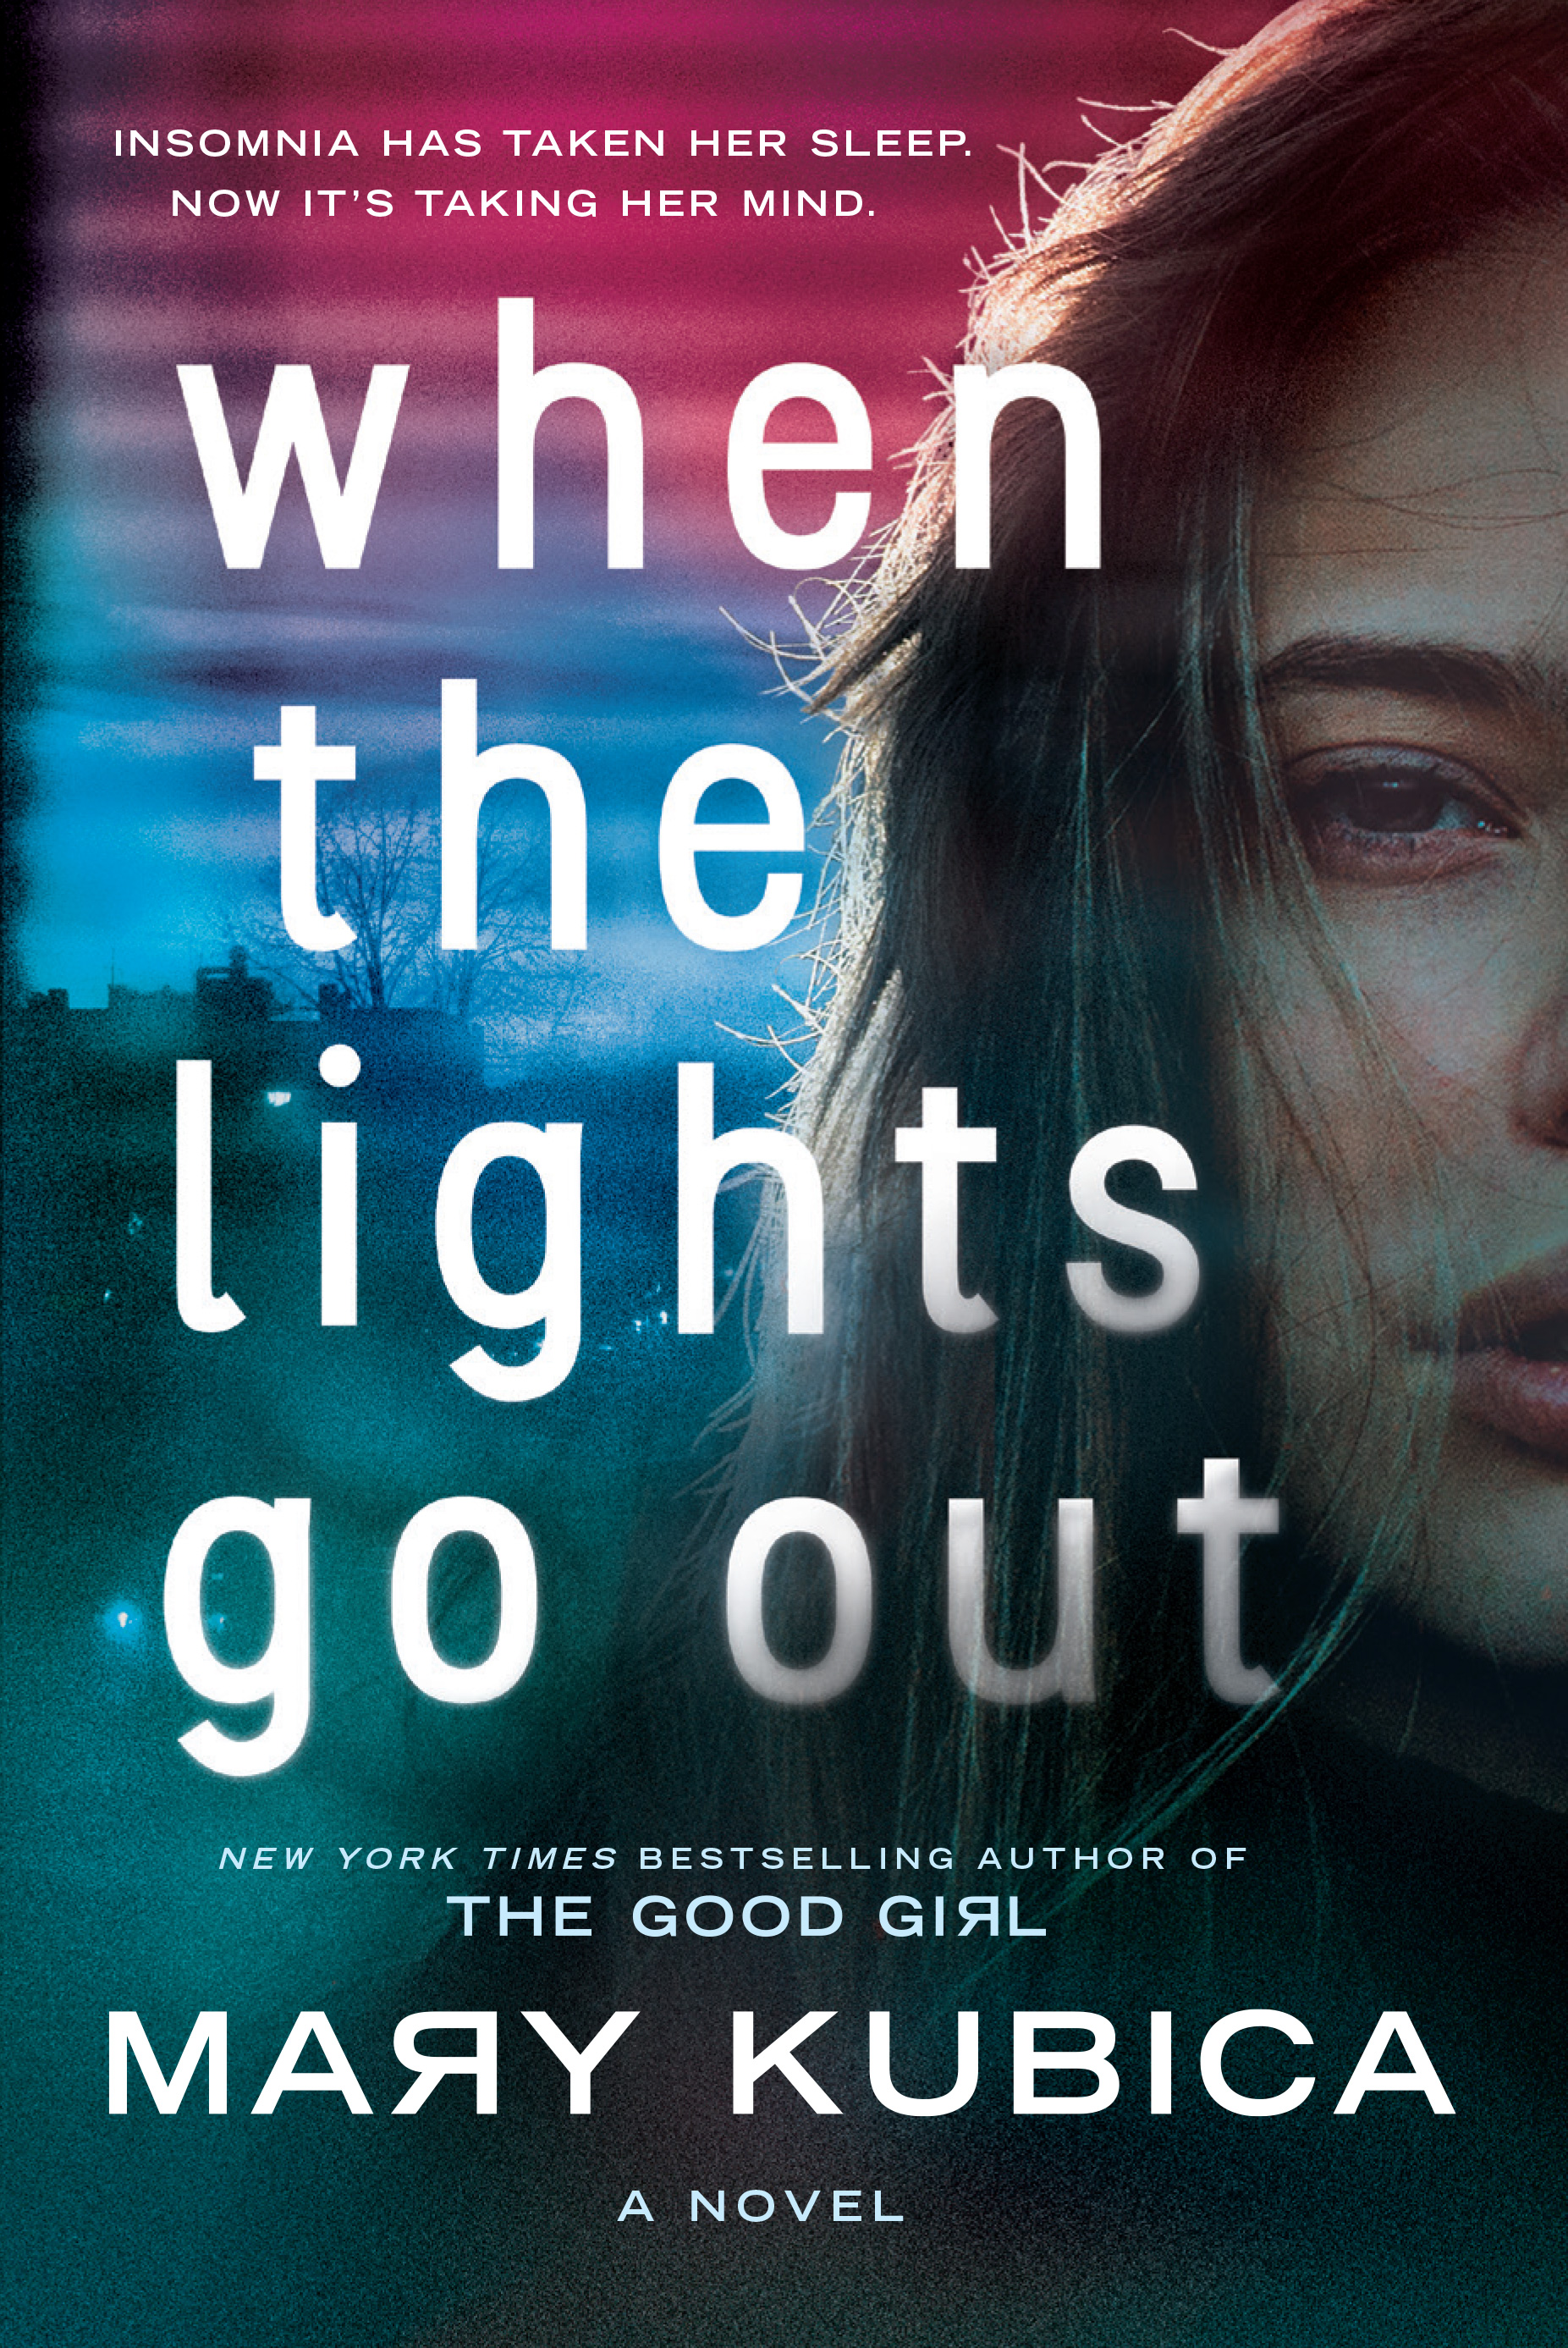 The cover of the book When the Lights Go Out